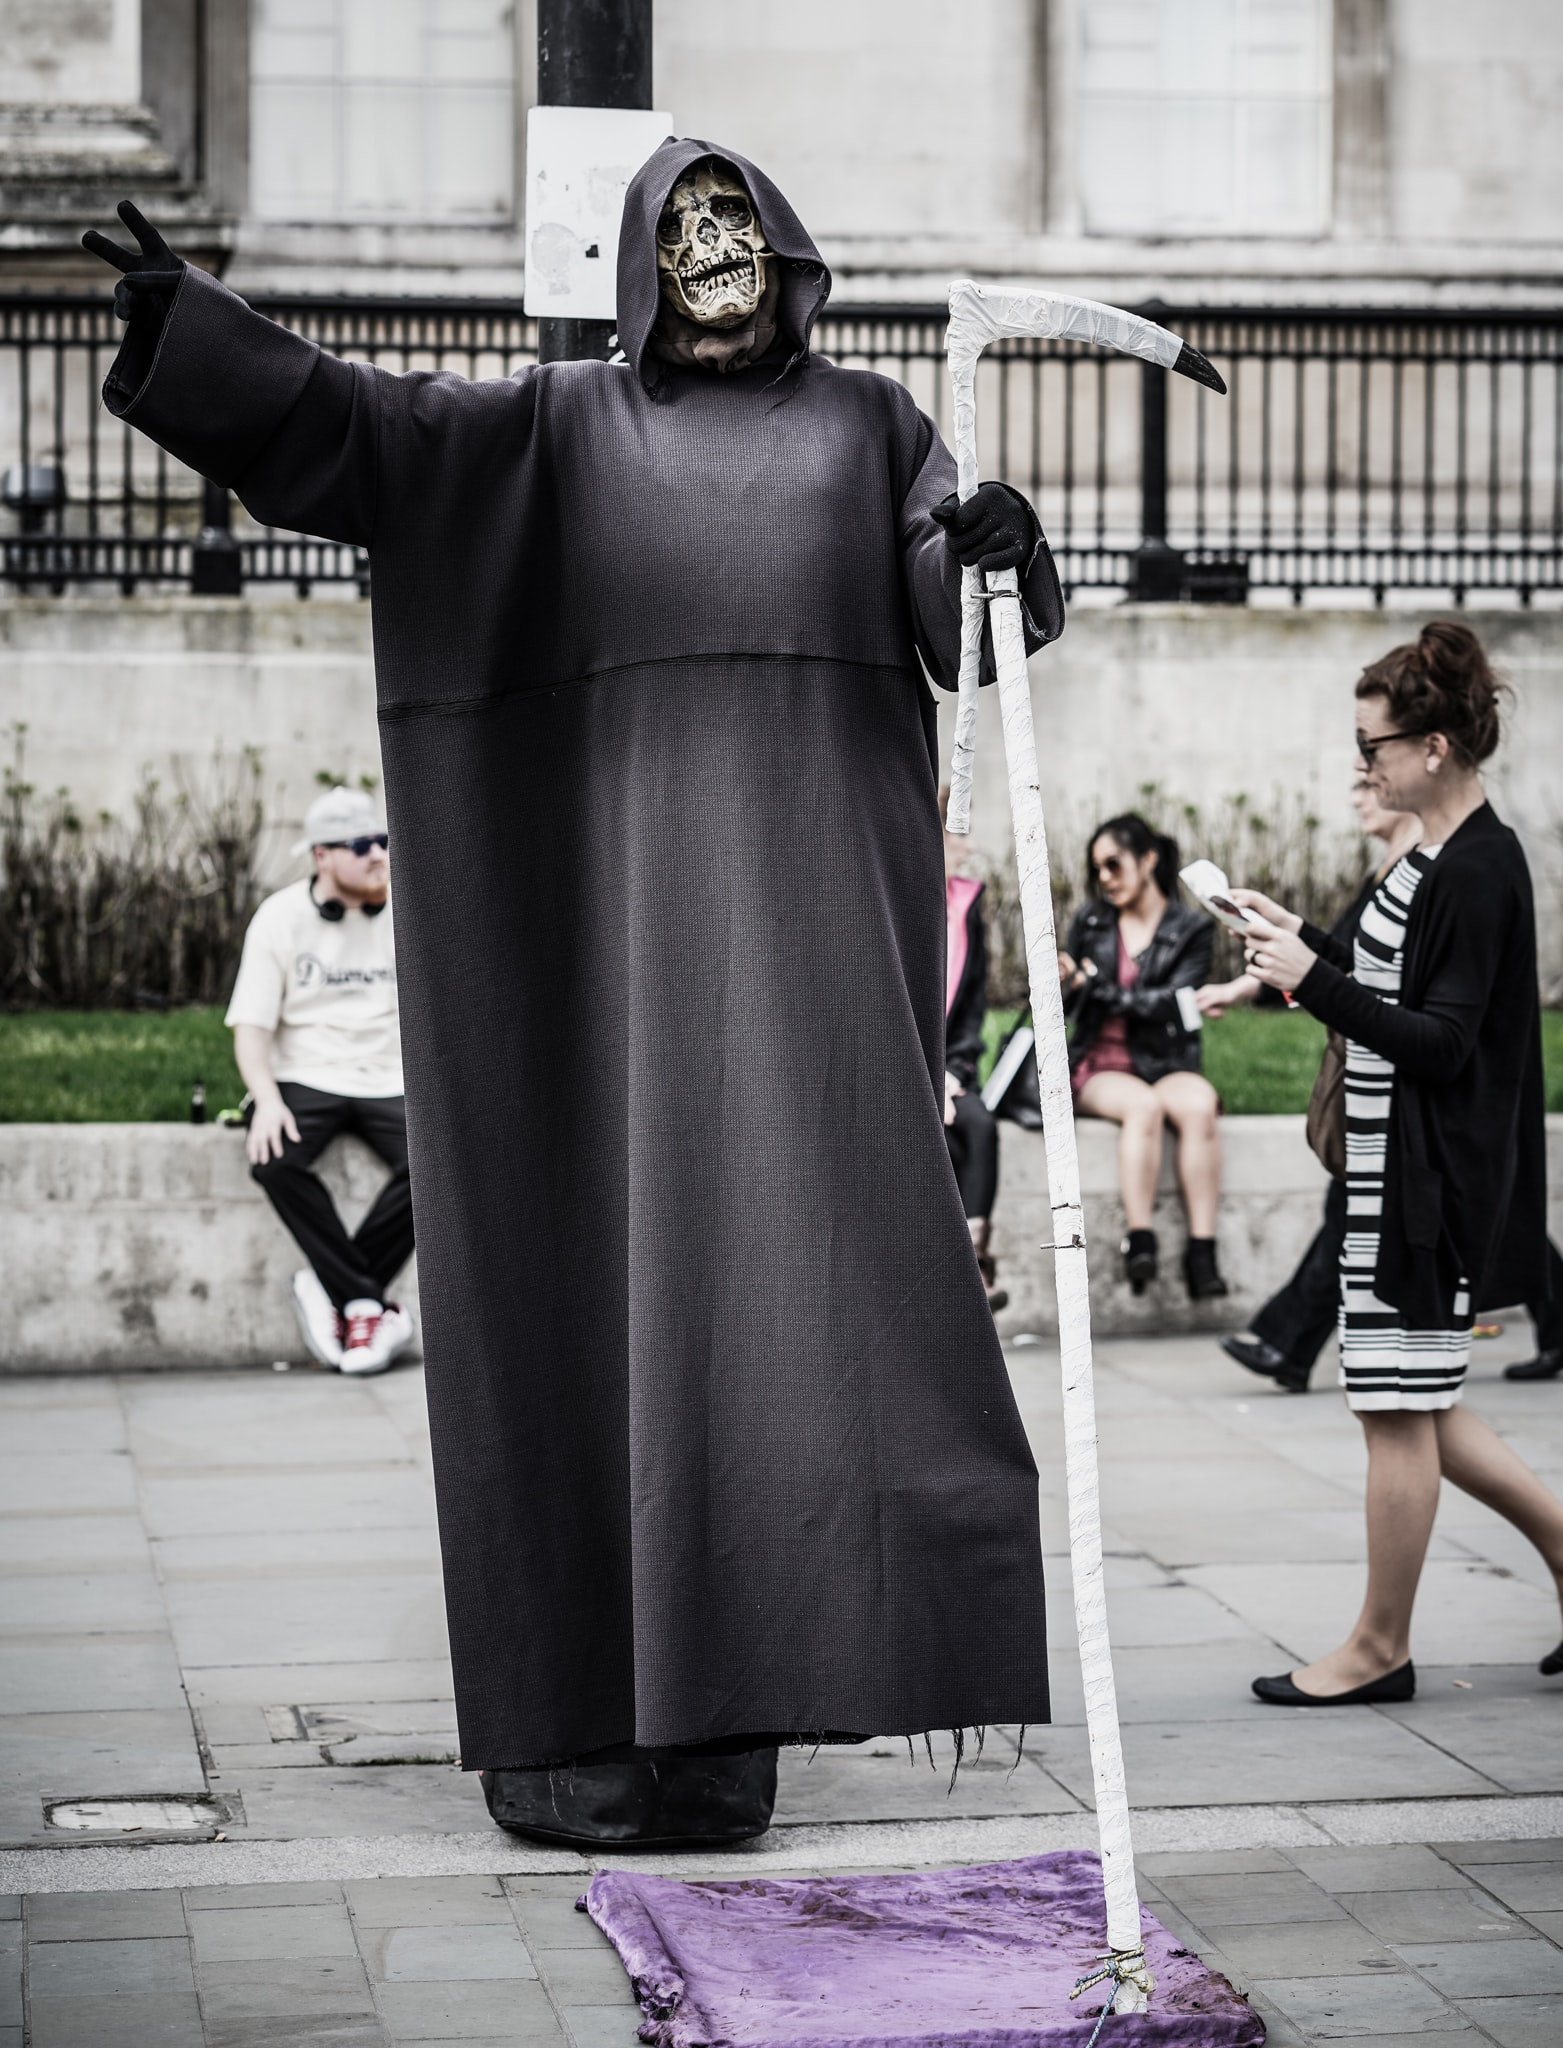 man in grim reaper costume with scythe near woman walking and people sitting on ledge